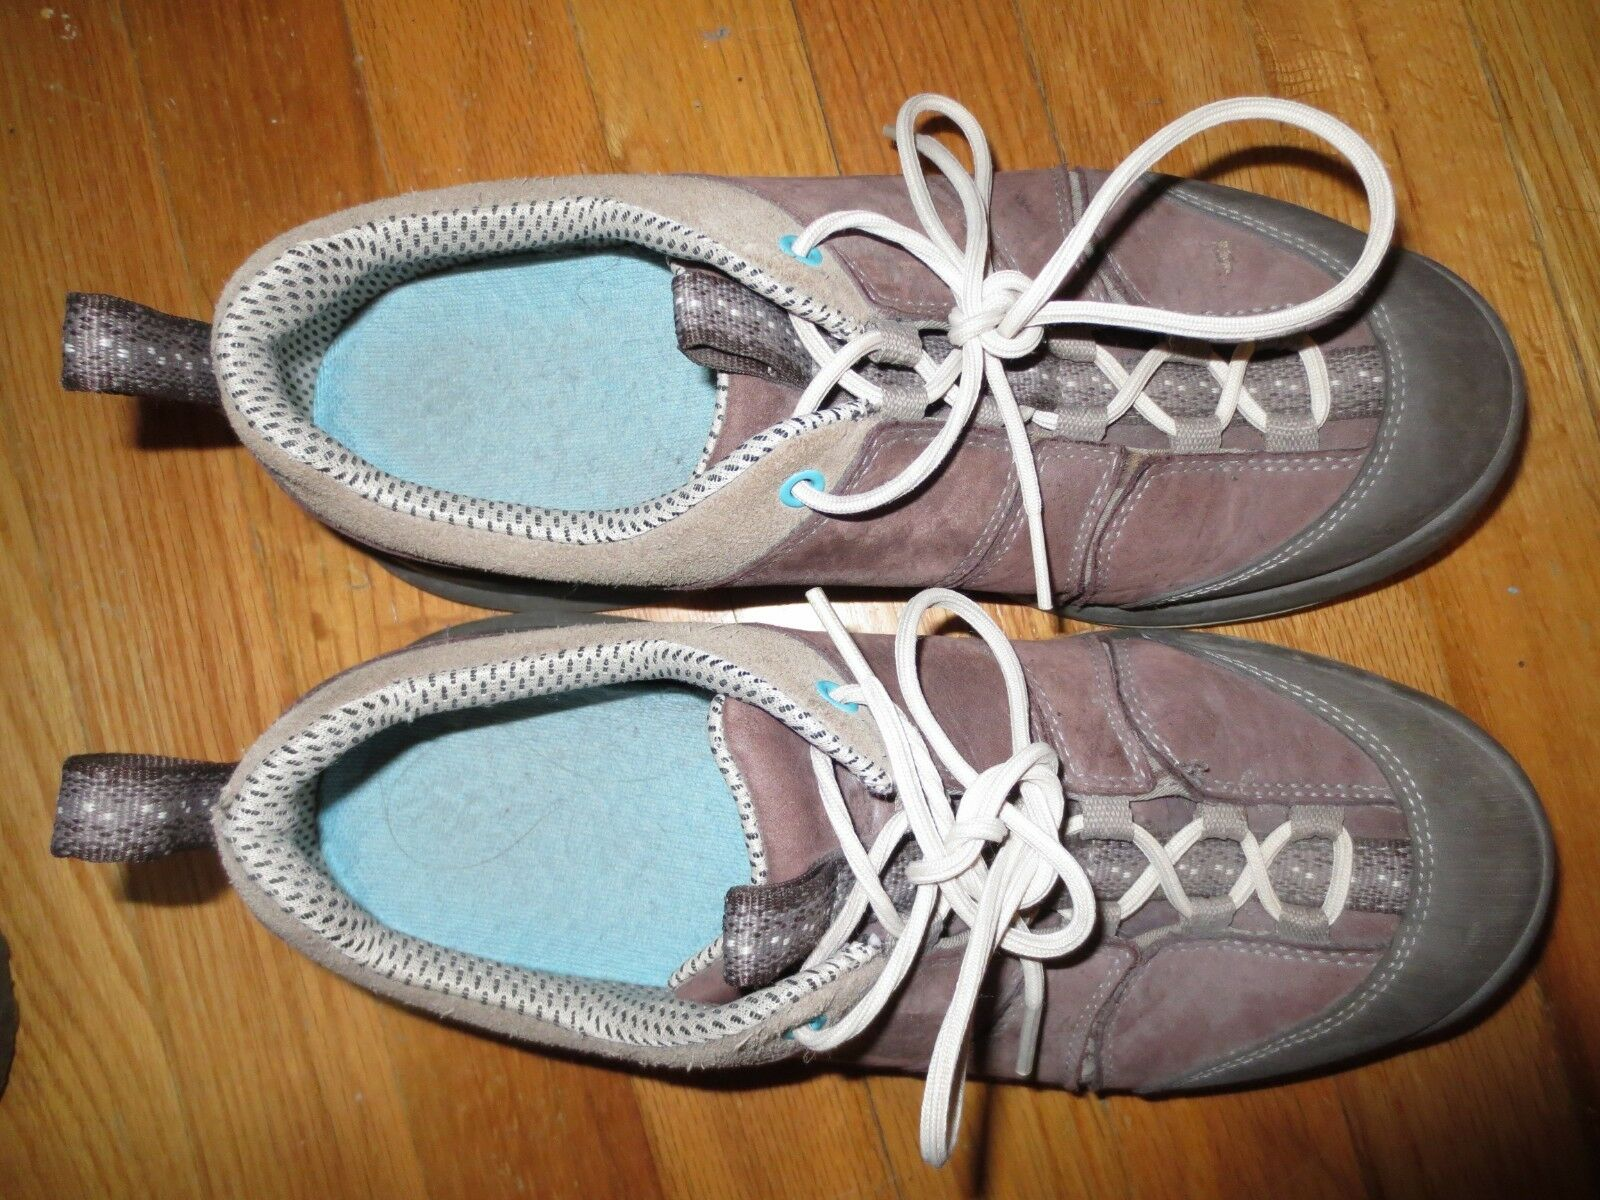 WOMEN's Chaco Torian Mudslide Brown Athletic Shoes Size 9.5 Very Good Condition